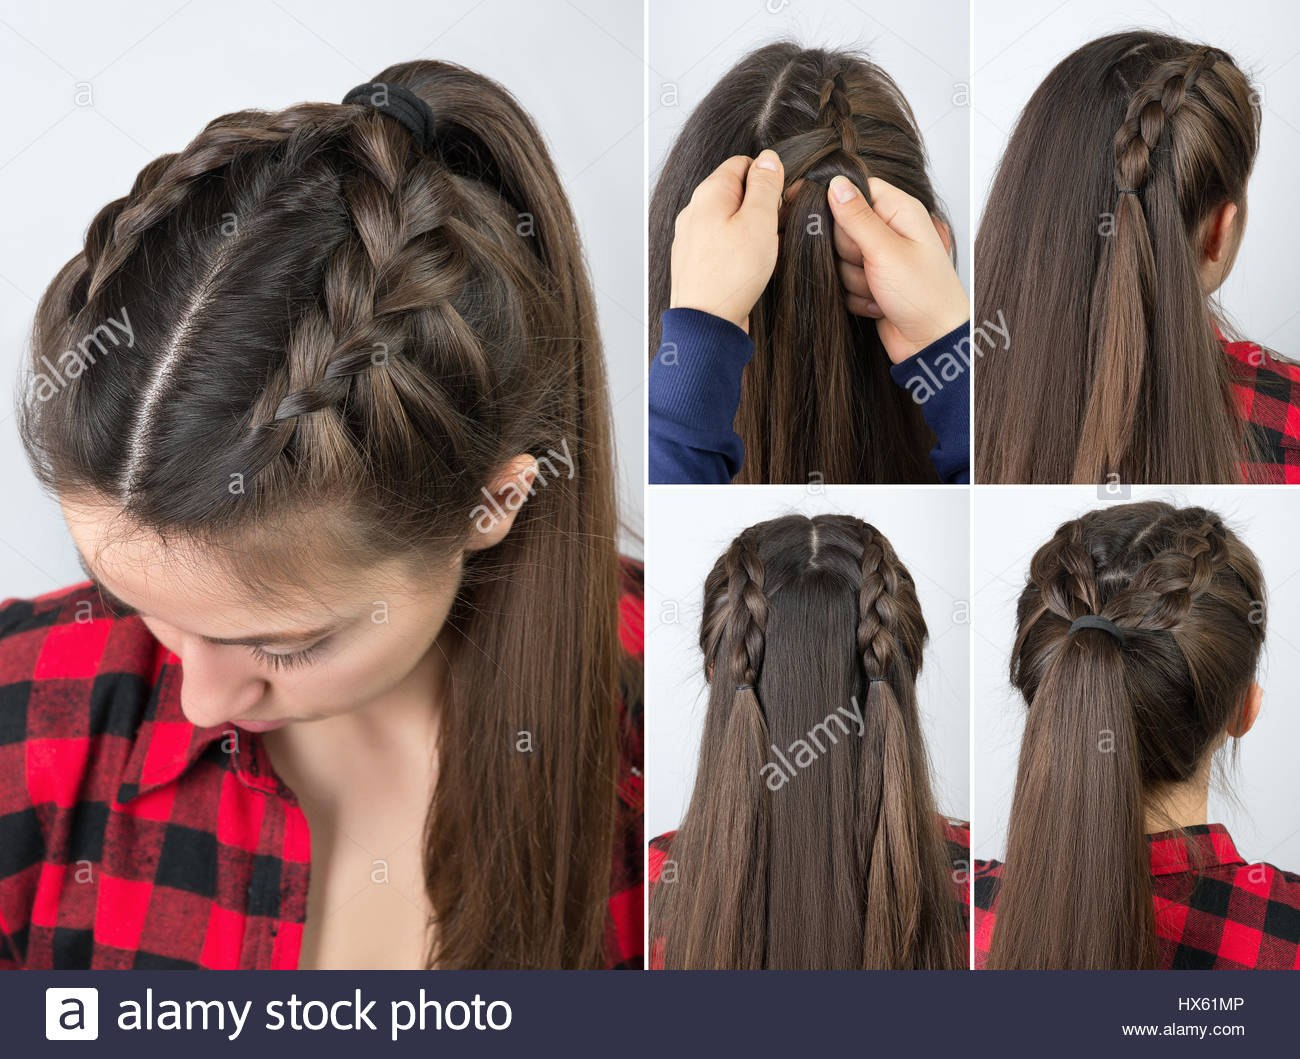 stock photo simple braided hairstyle tutorial step by step easy hairstyle for ml